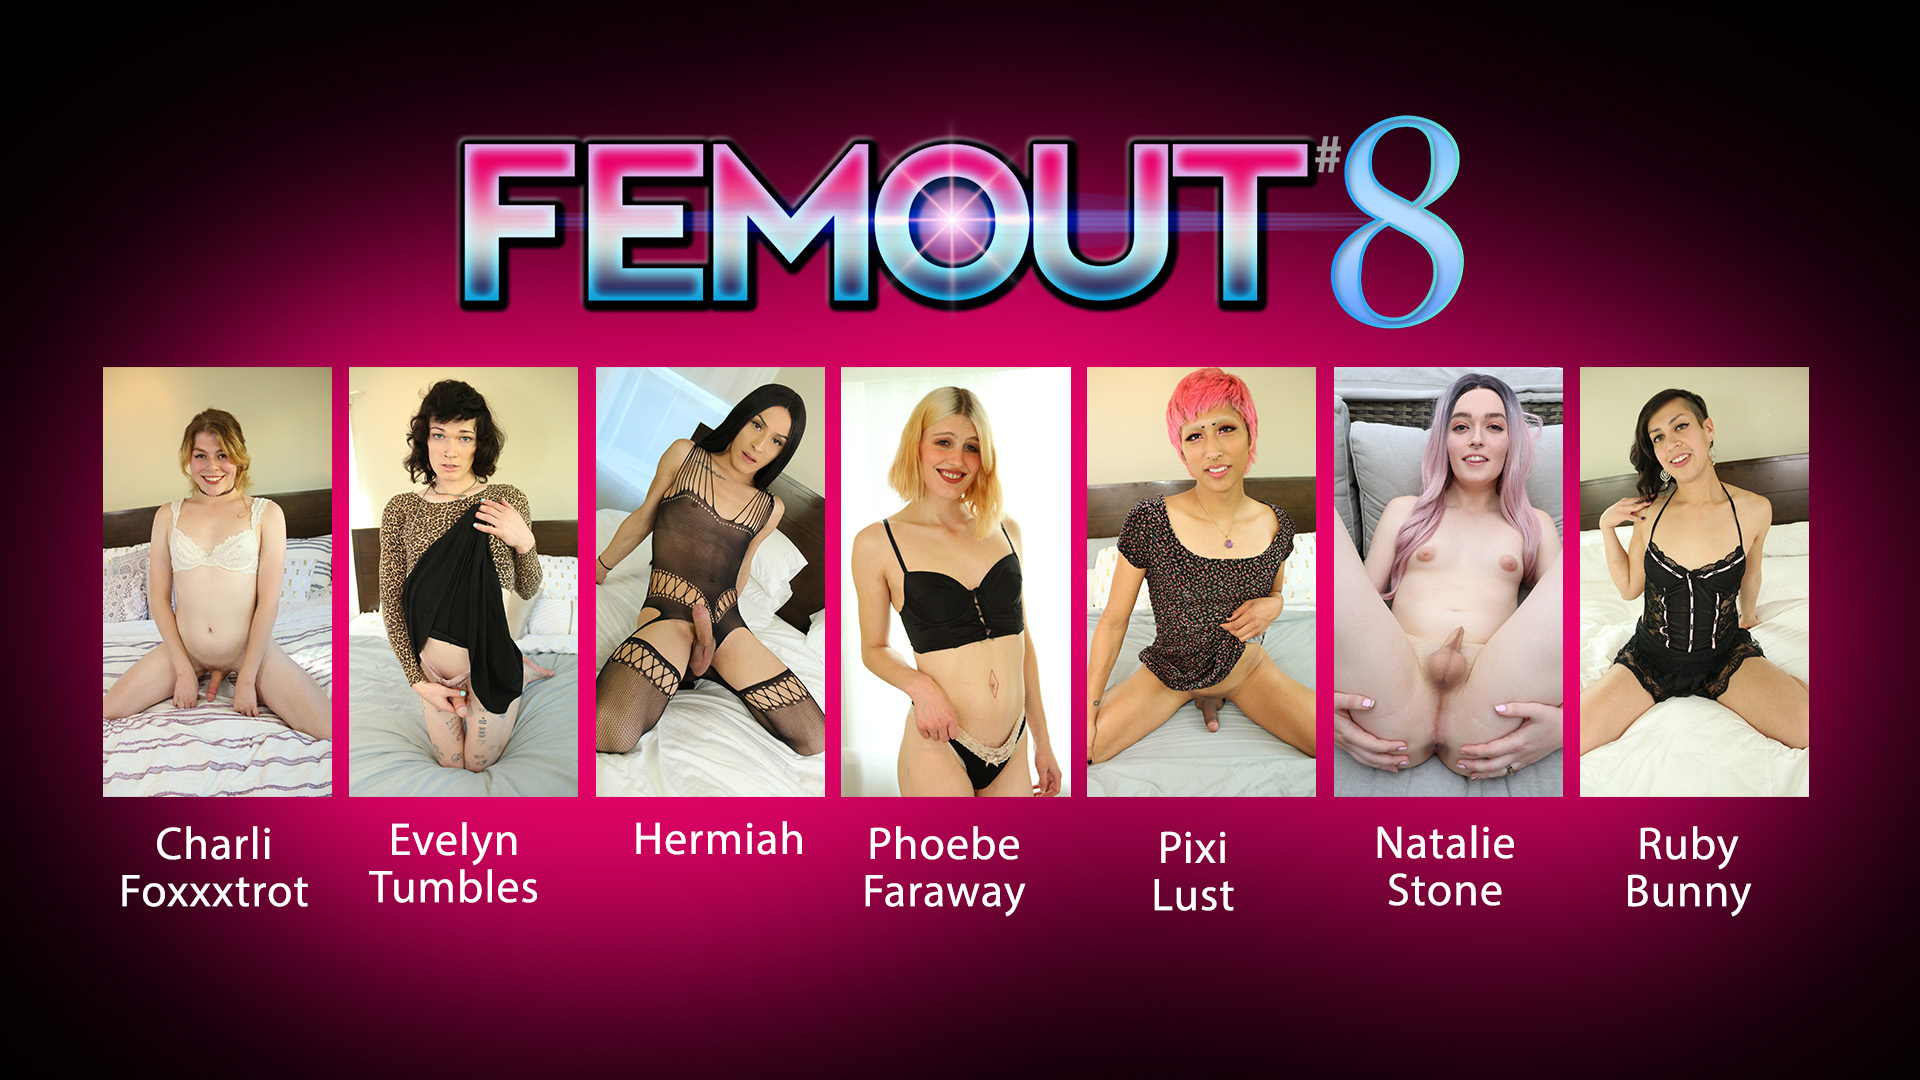 Femout #8 DVD Trailer